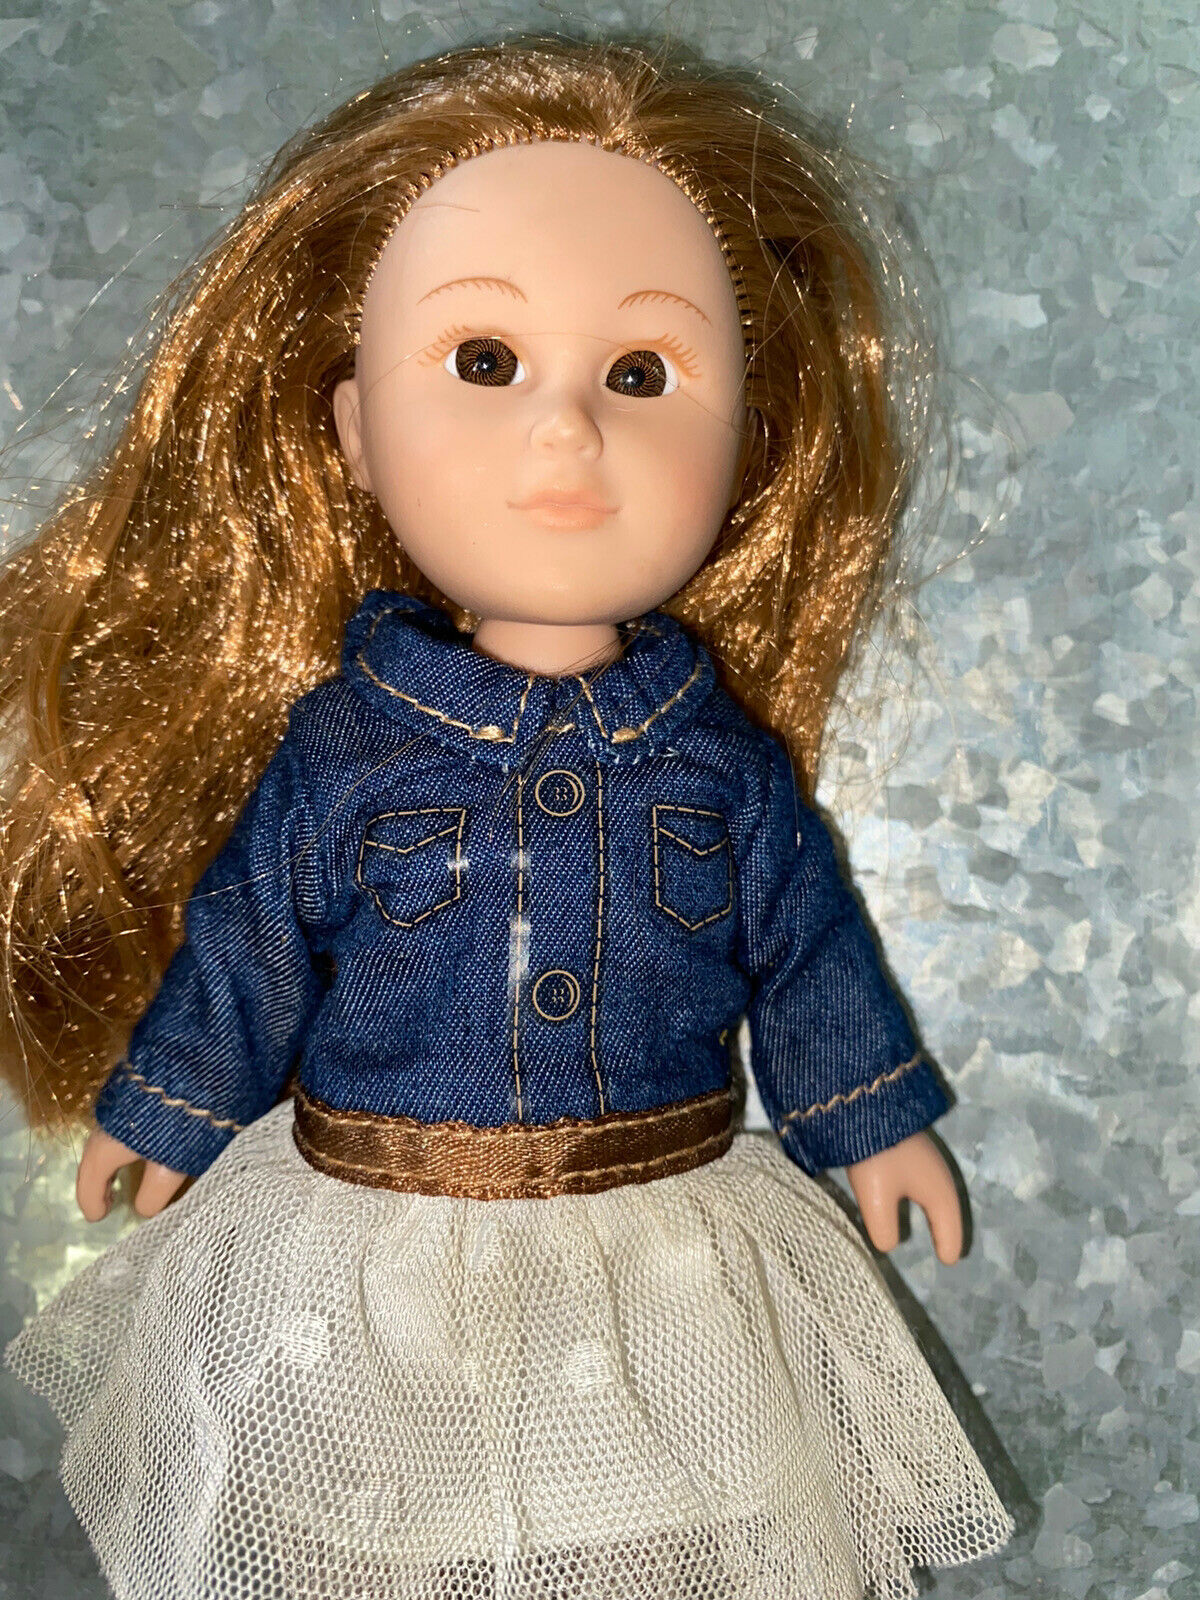 My Life As Mini Cowgirl Doll 7 Inch Brown Eyes - $10.30